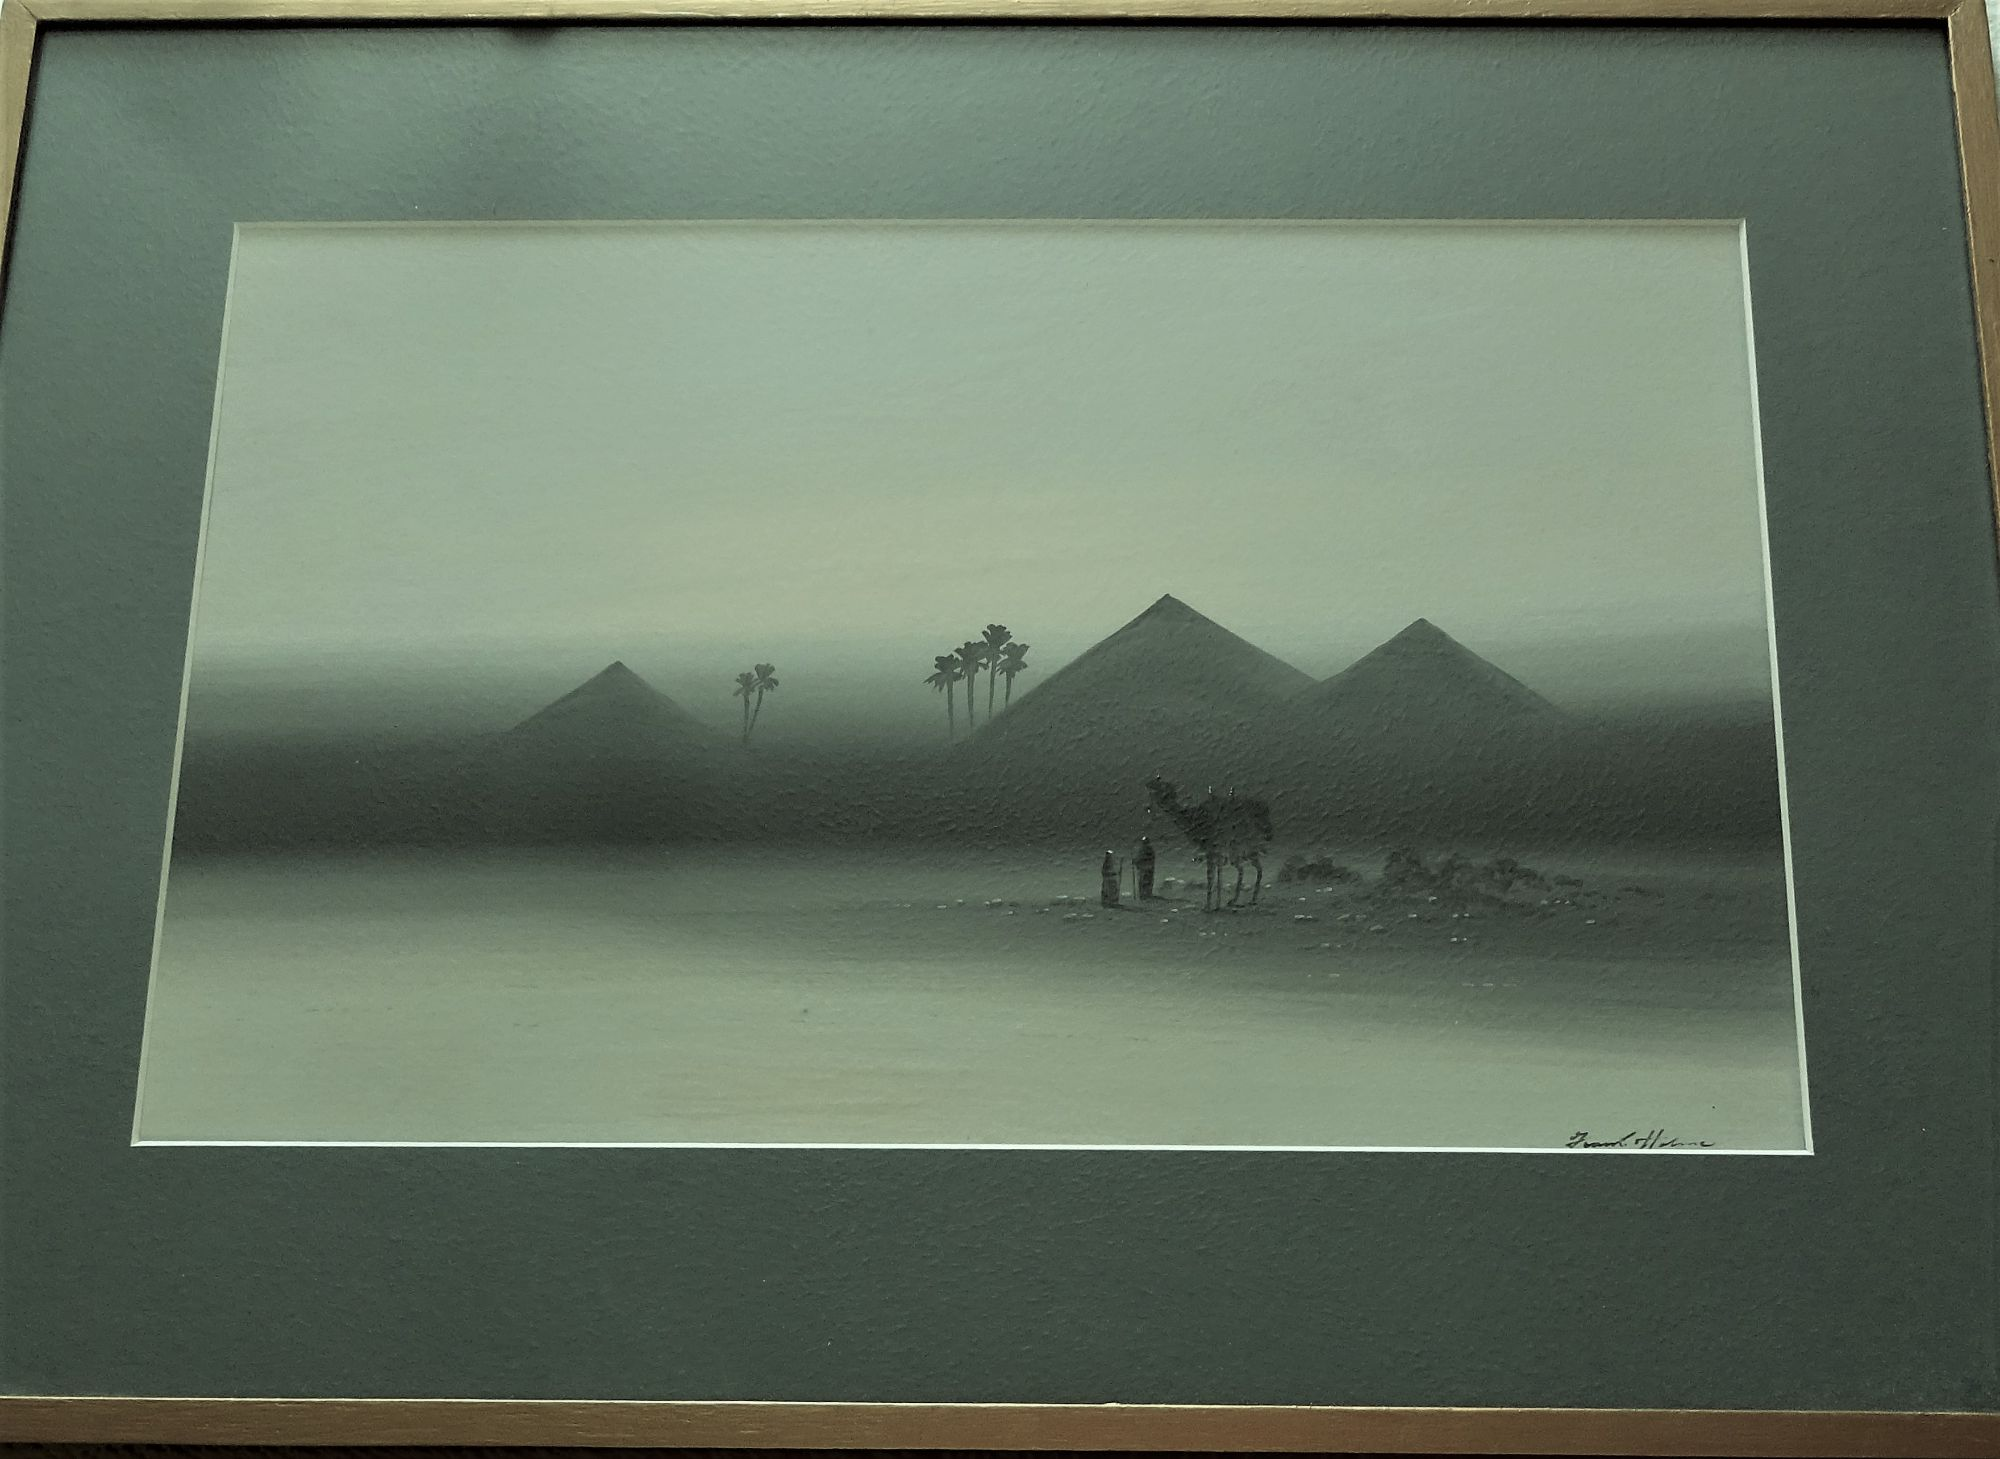 Frank Holme, Two Figures and Camel near Pyramids, gouache, signed, c1920.